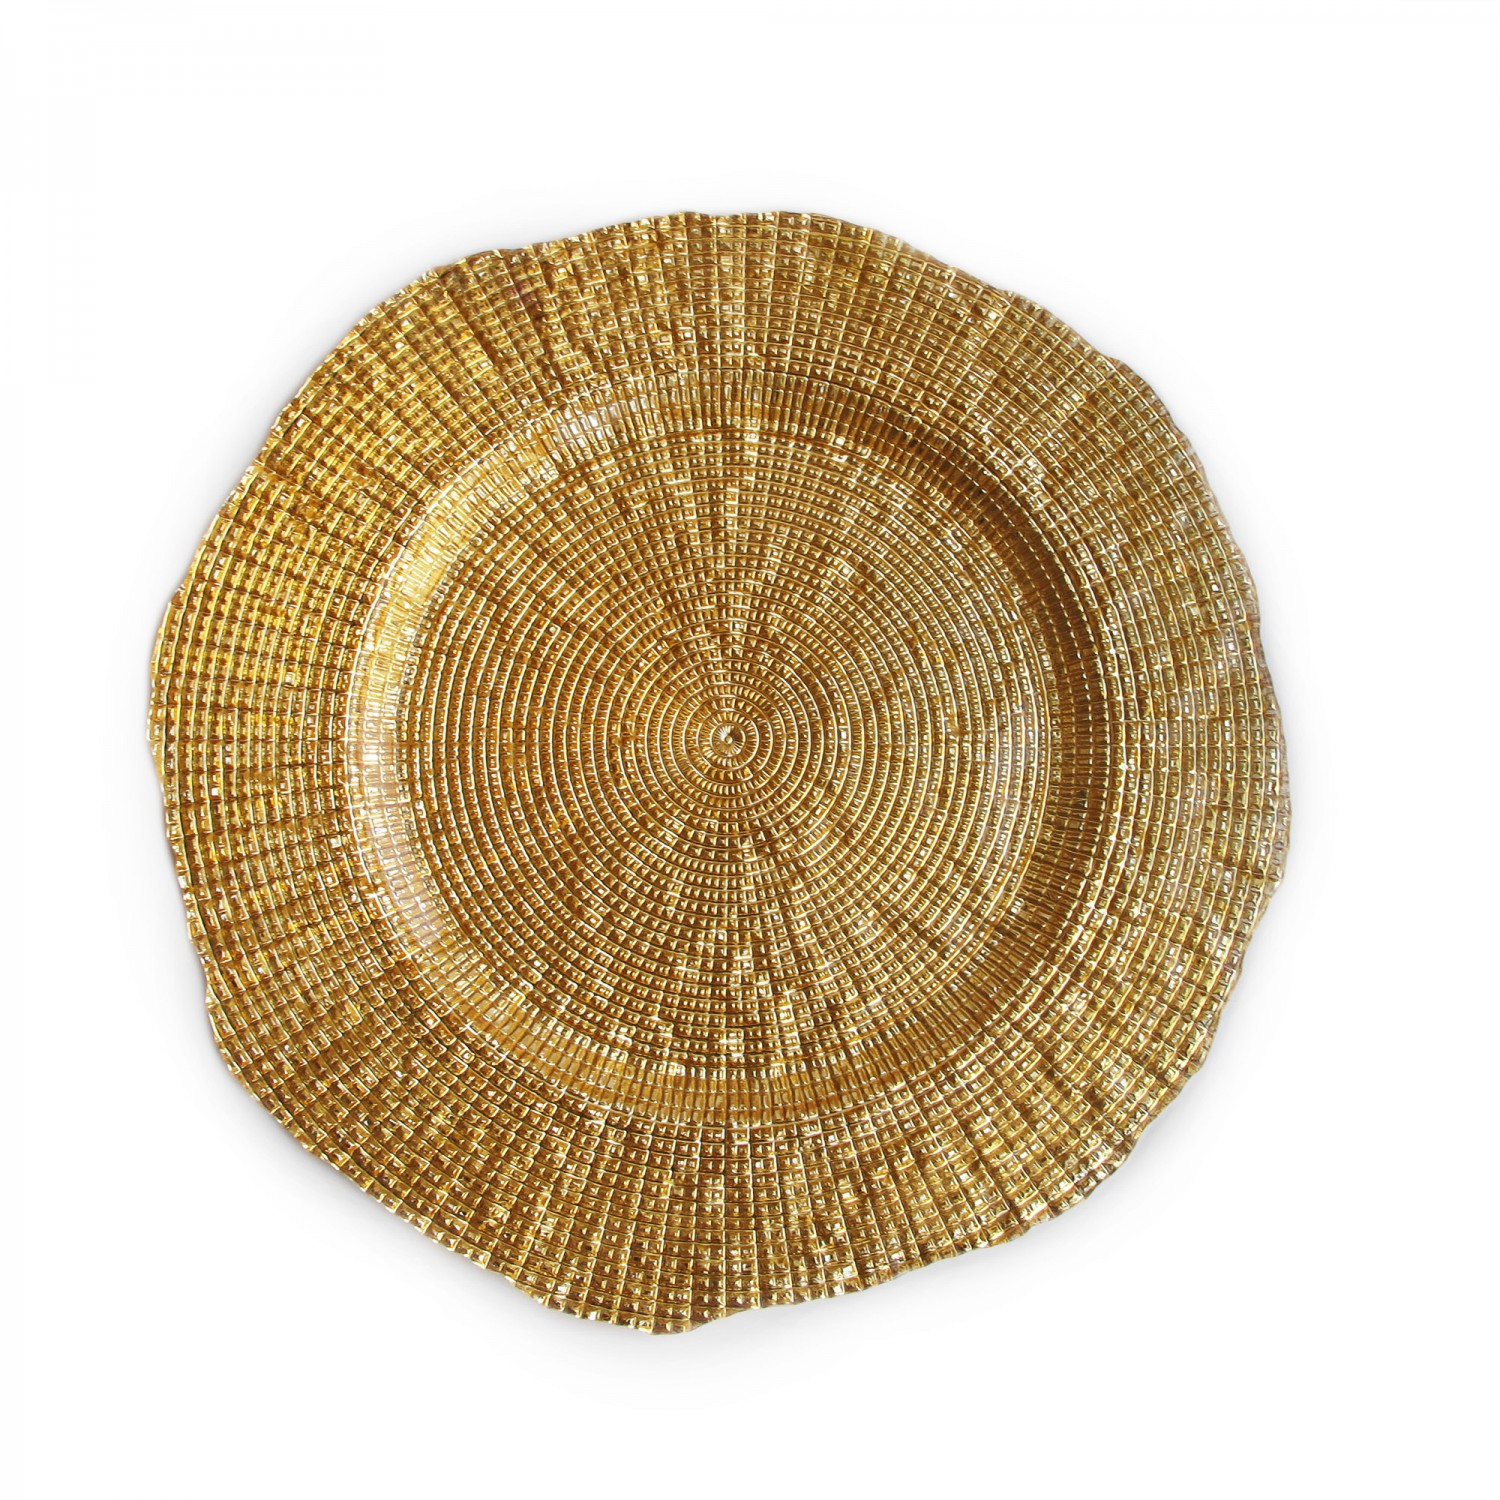 The Jay Companies 1470336 Round Infinity Gold Glass Charger Plate 13""